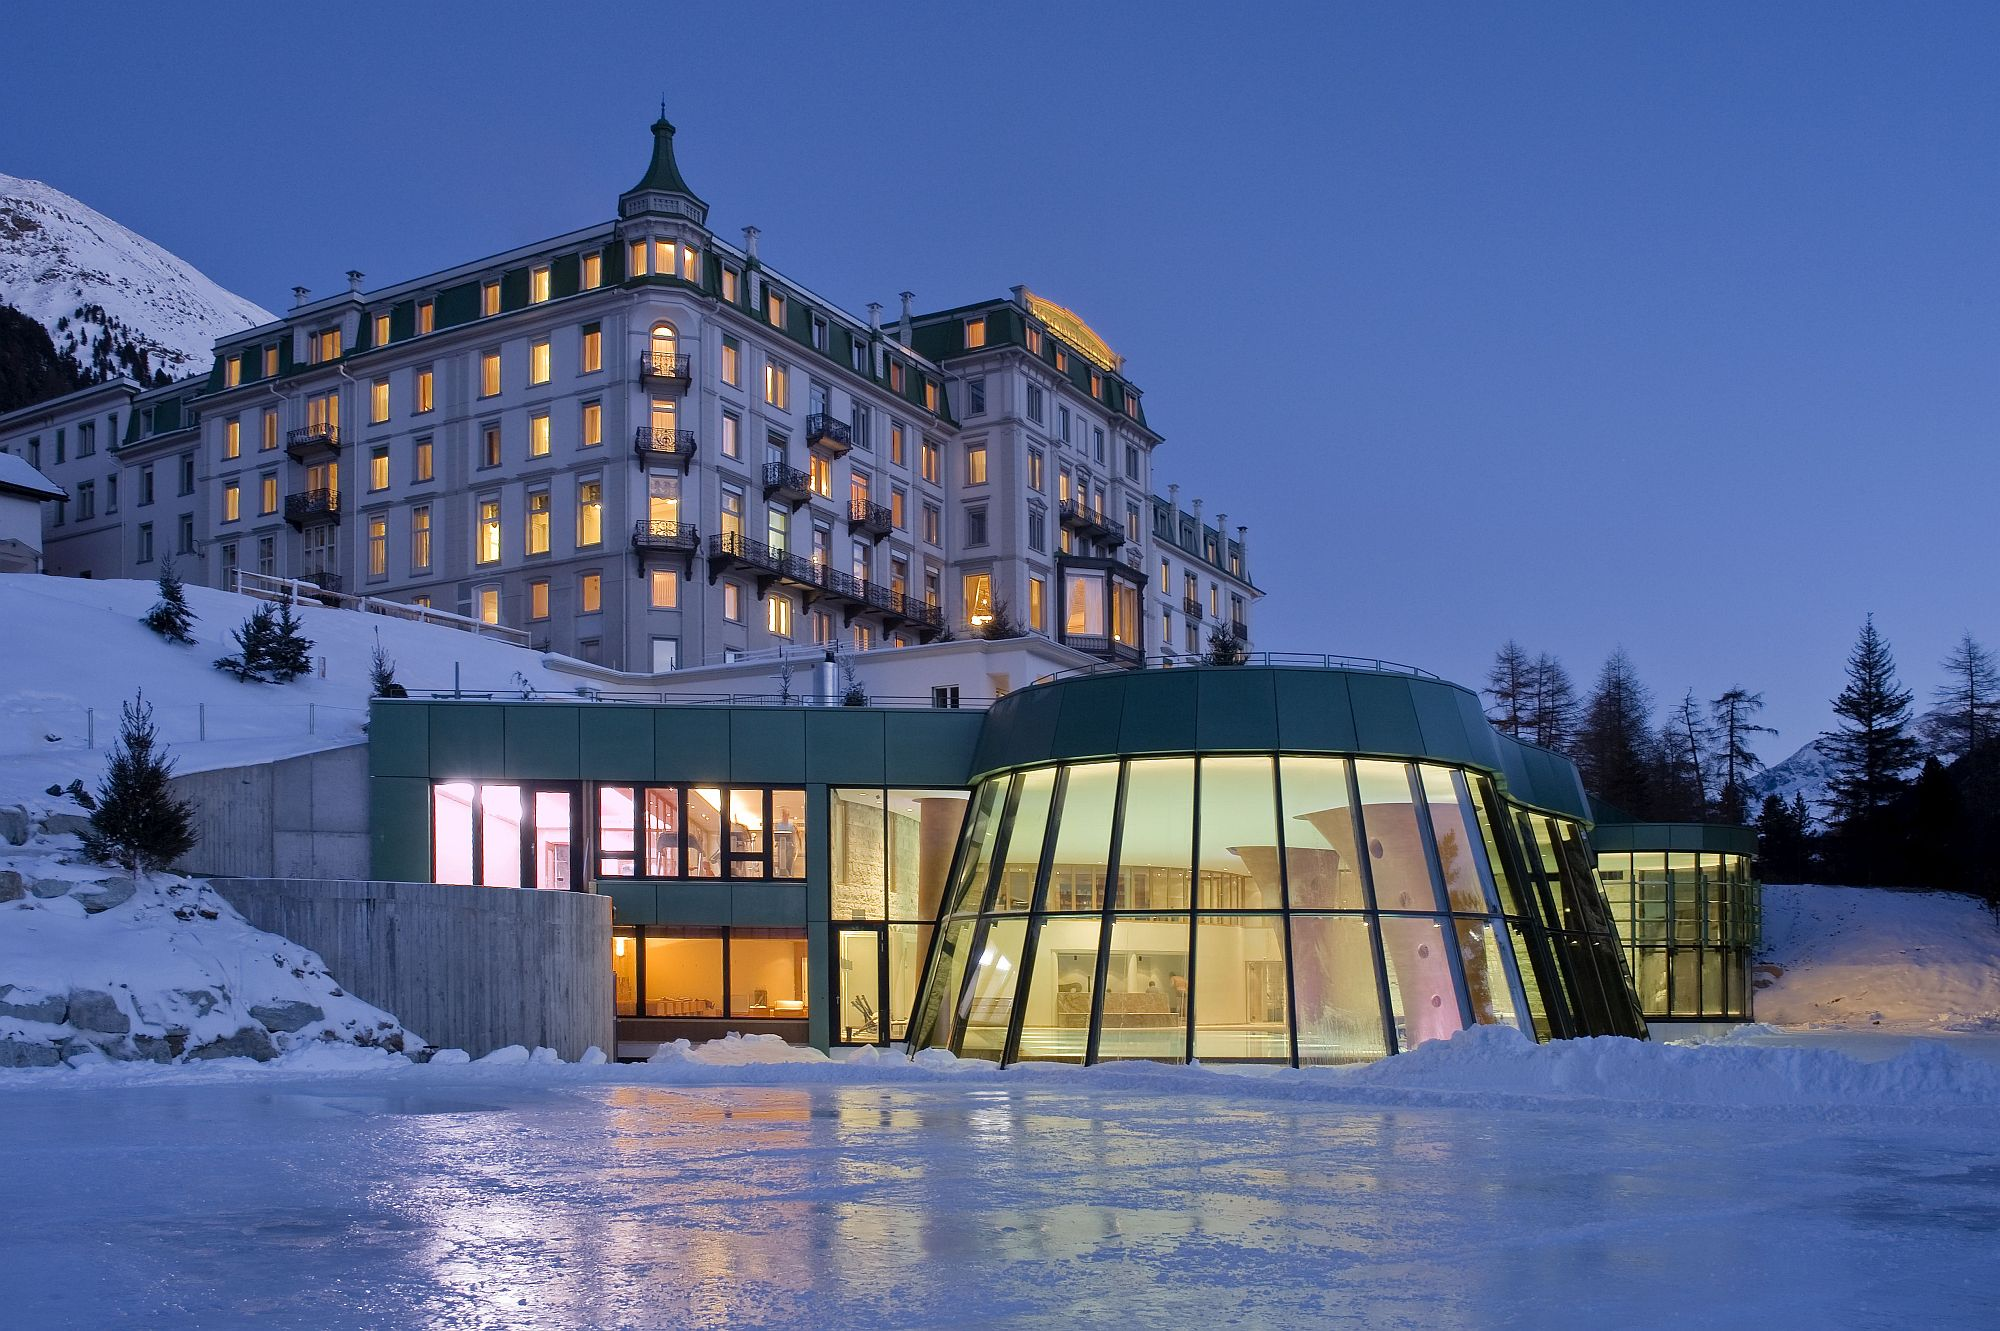 Grand Kronenhof truly offers a majestic Swiss getaway amidst stunning alps